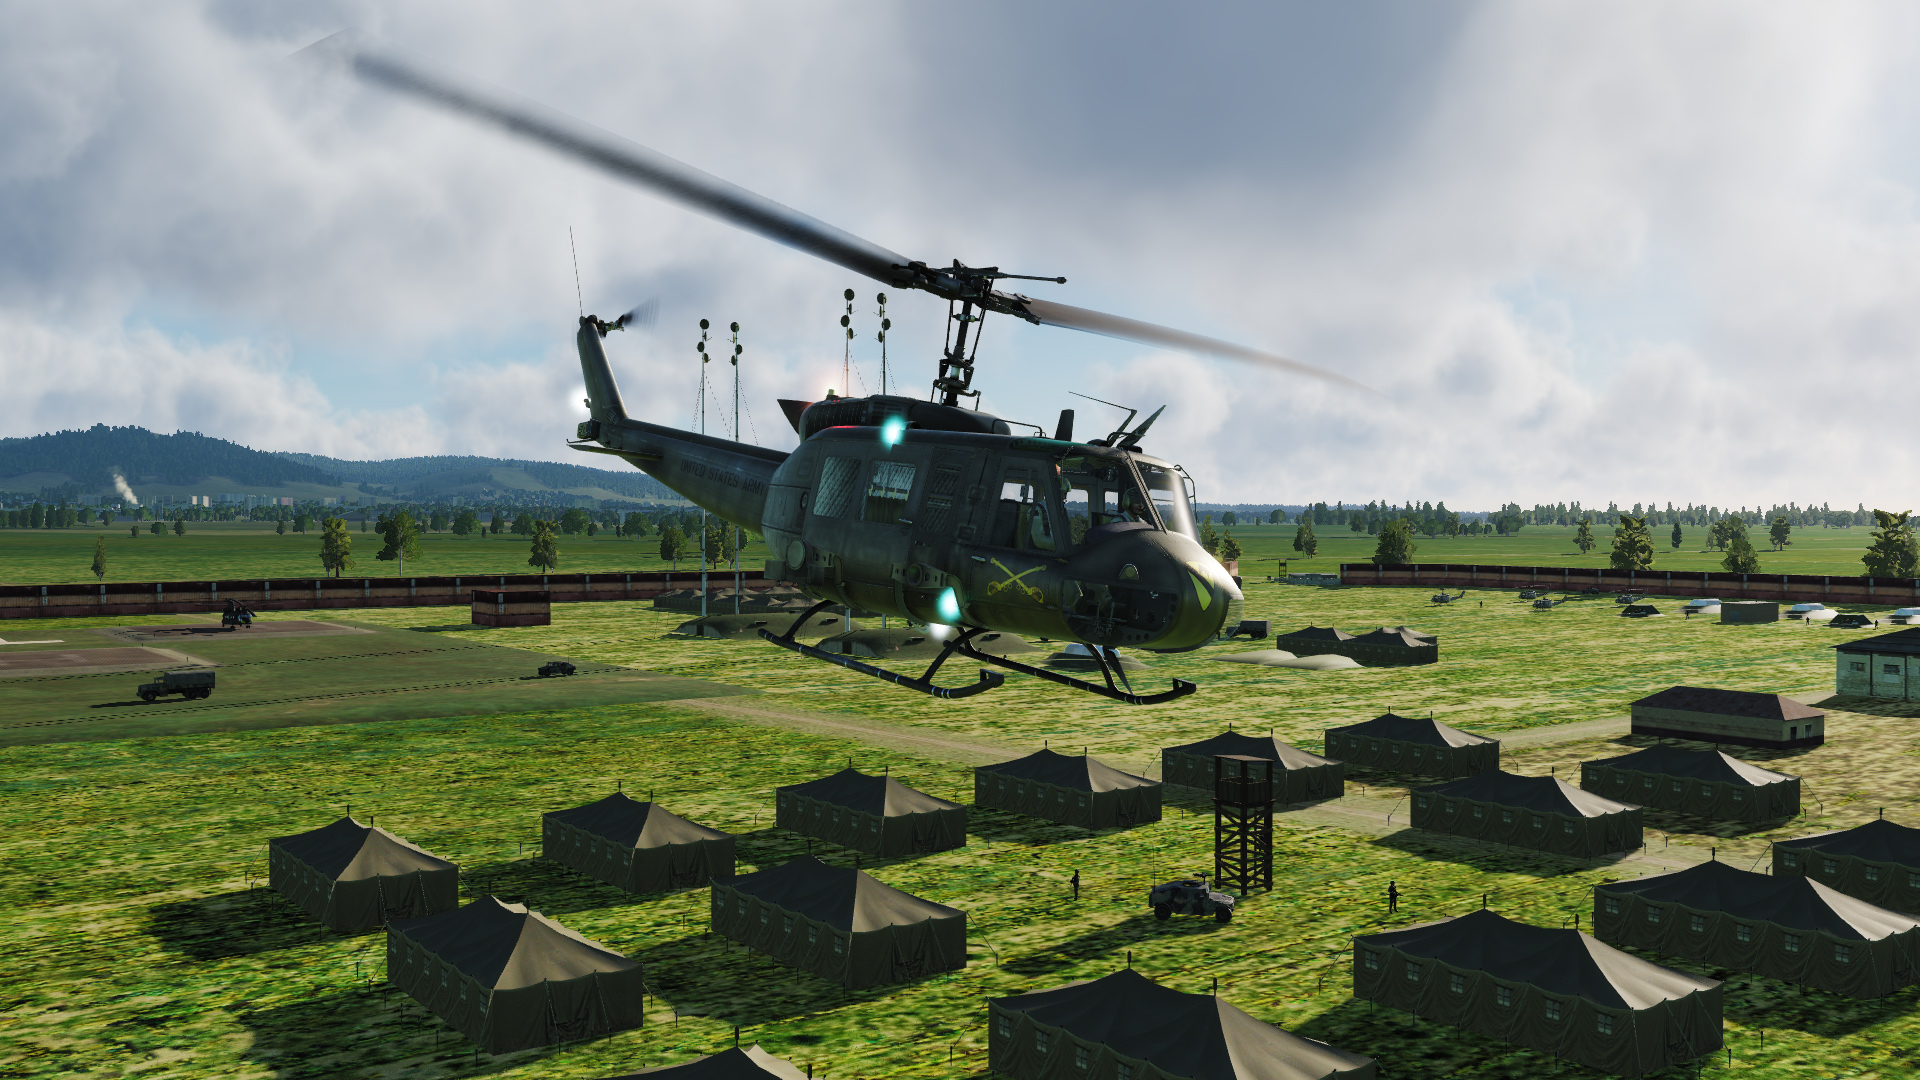 FARP Hollywood 001 - Troop Extraction from Outpost 27B UH1-Huey or Mi8